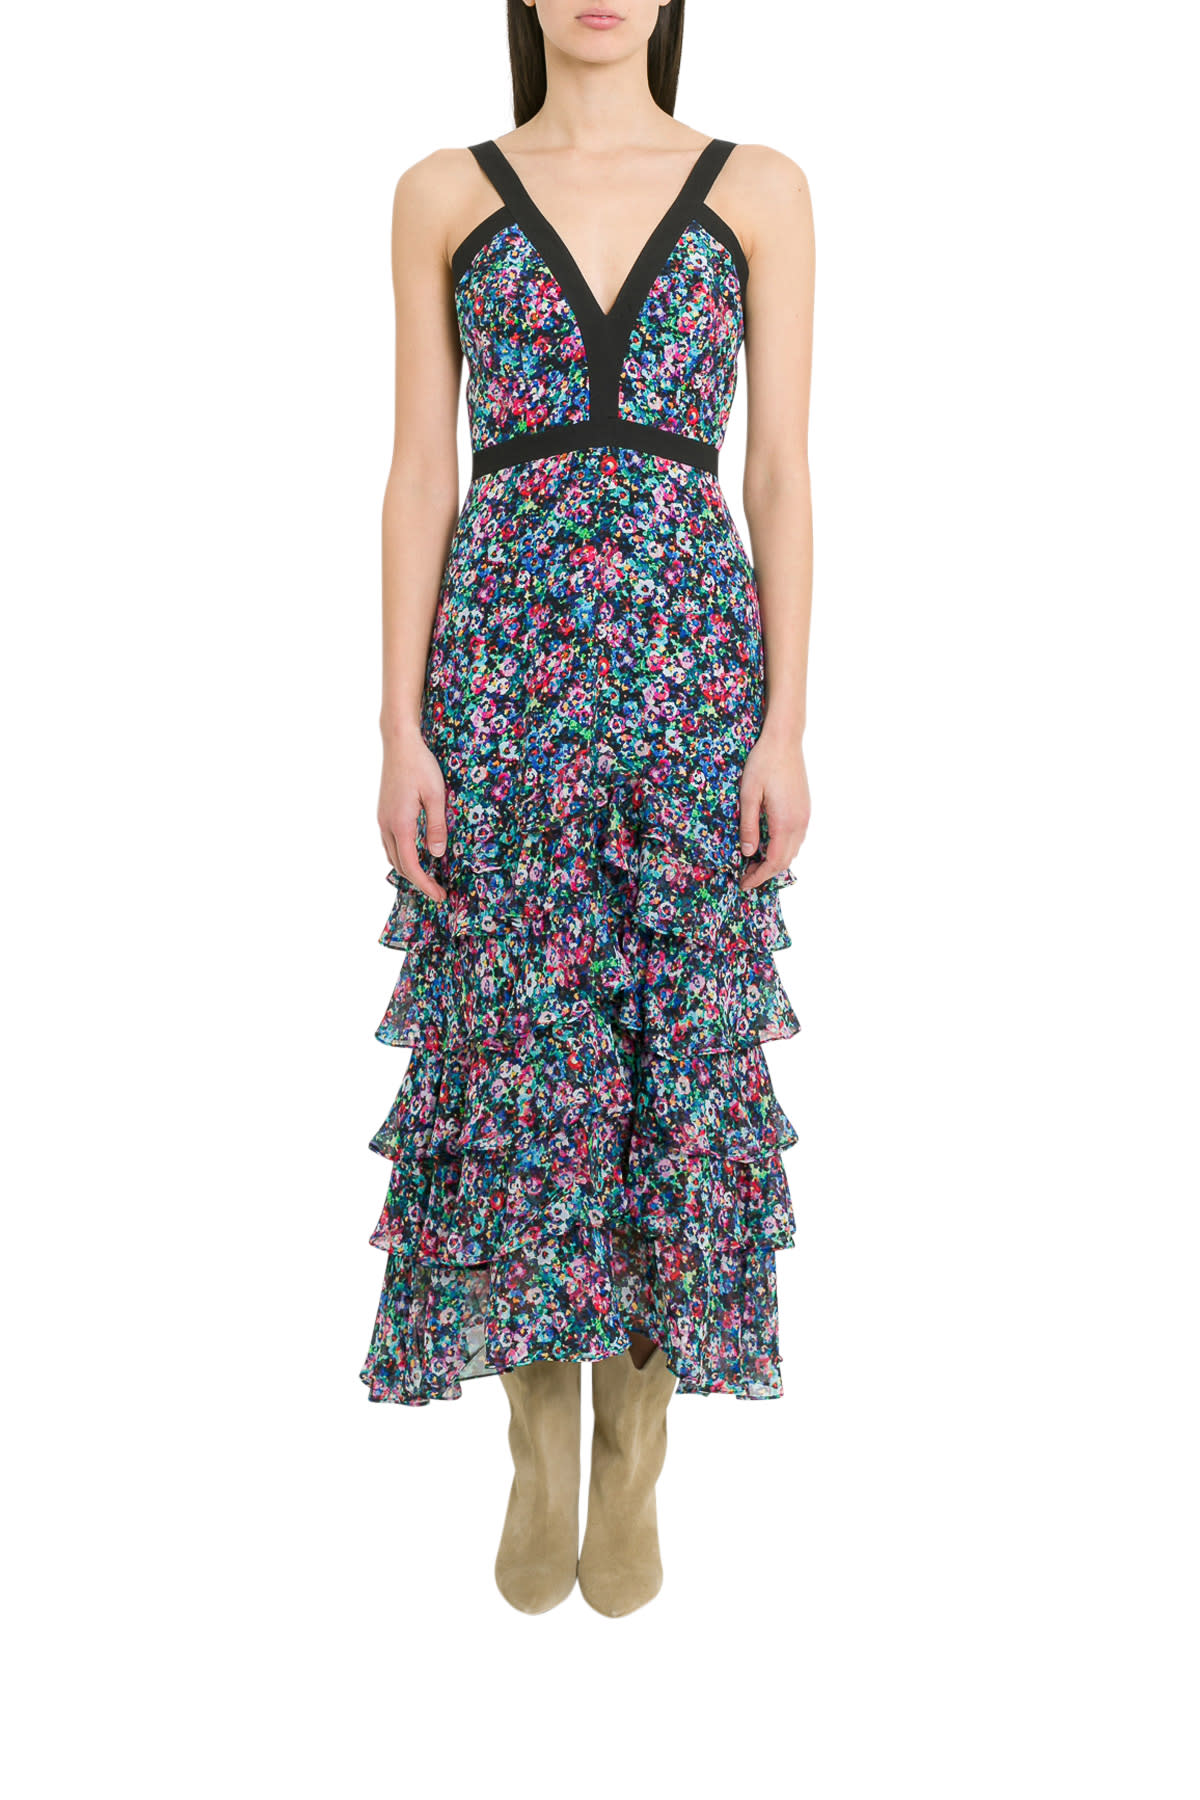 Saloni Lana Tiered Dress With Floral Motif